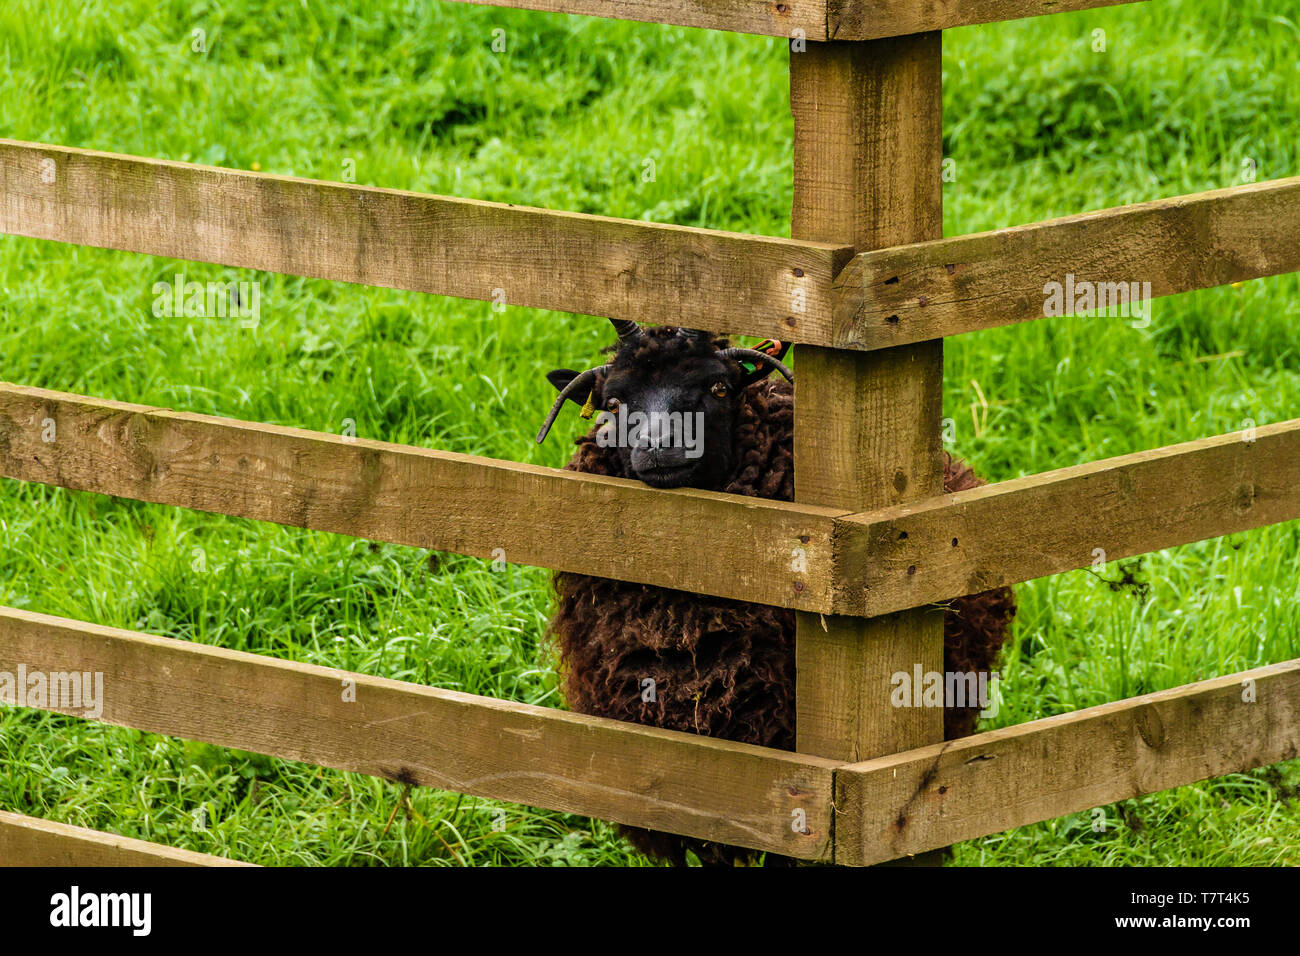 Horned Hebridean sheep looking through a wooden fence. Etal, Northumberland, UK. May 2018. - Stock Image